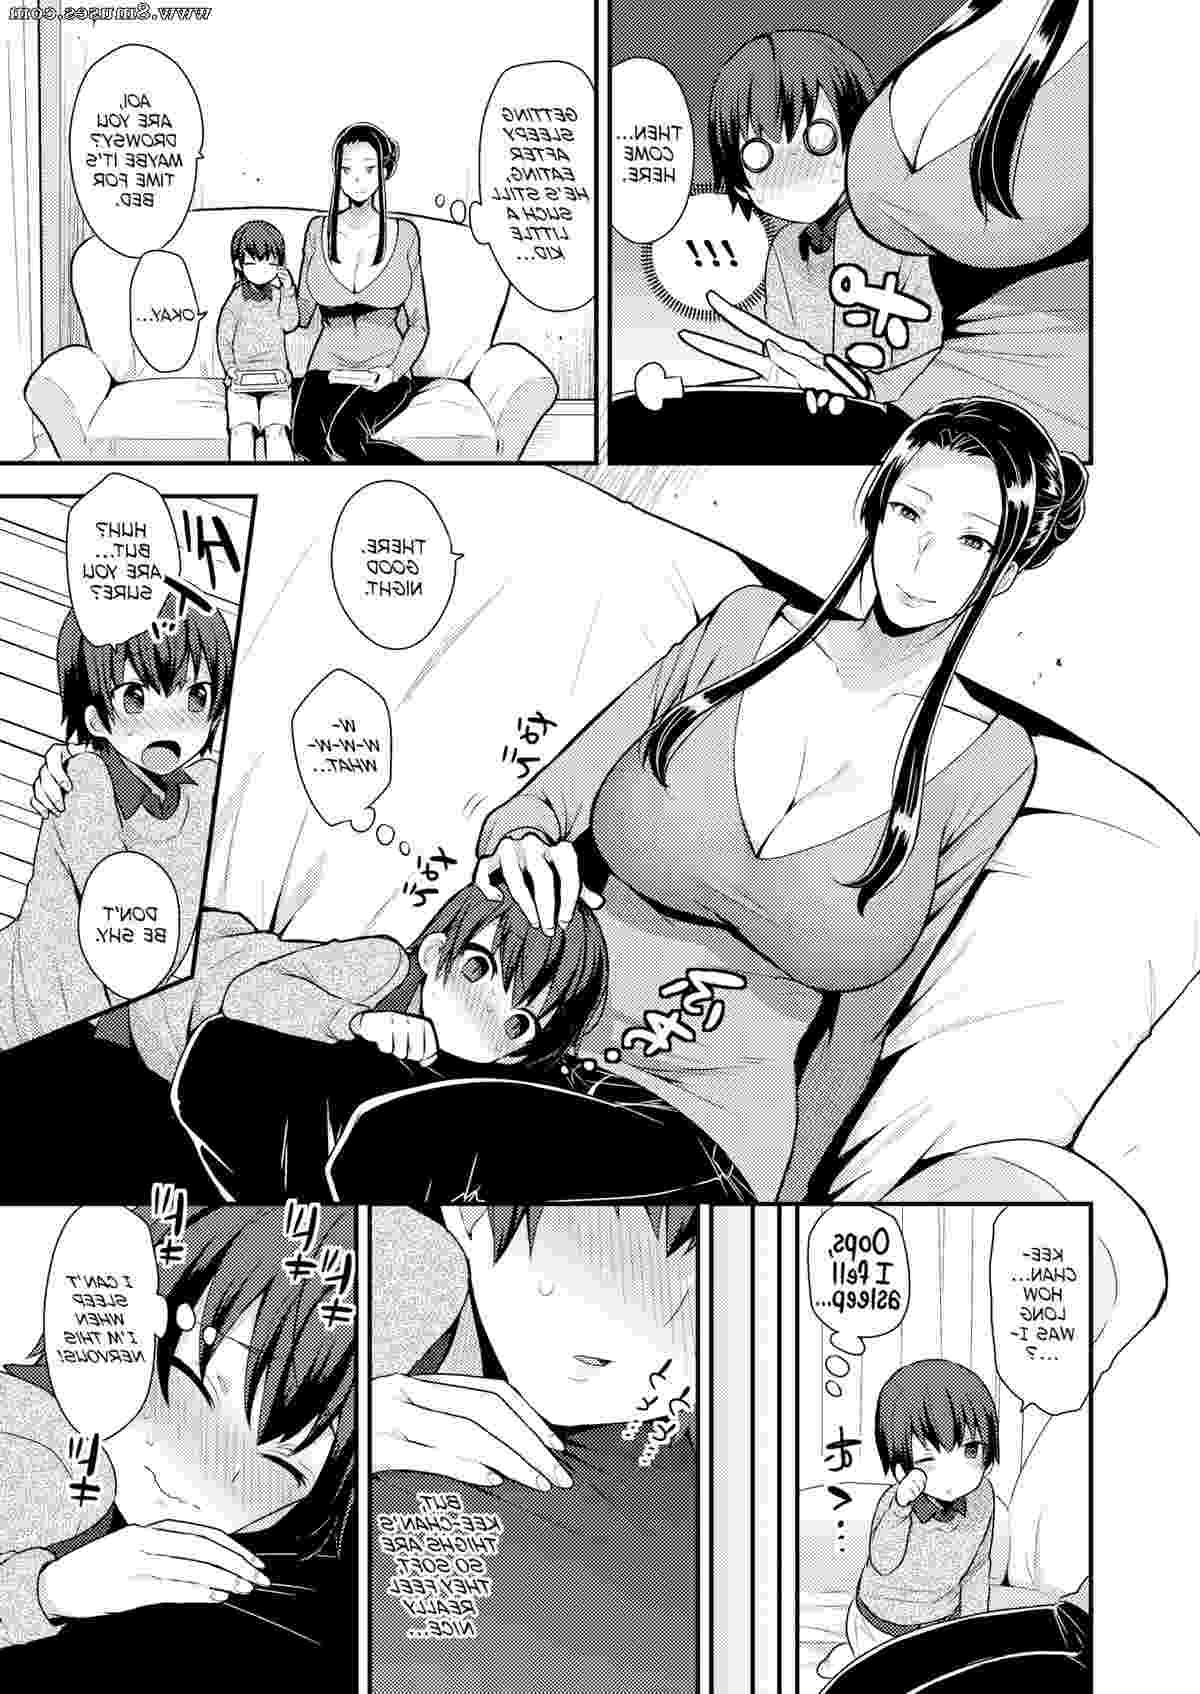 Fakku-Comics/Mogiki-Hayami/House-Sitting-Together House-Sitting_Together__8muses_-_Sex_and_Porn_Comics_2.jpg